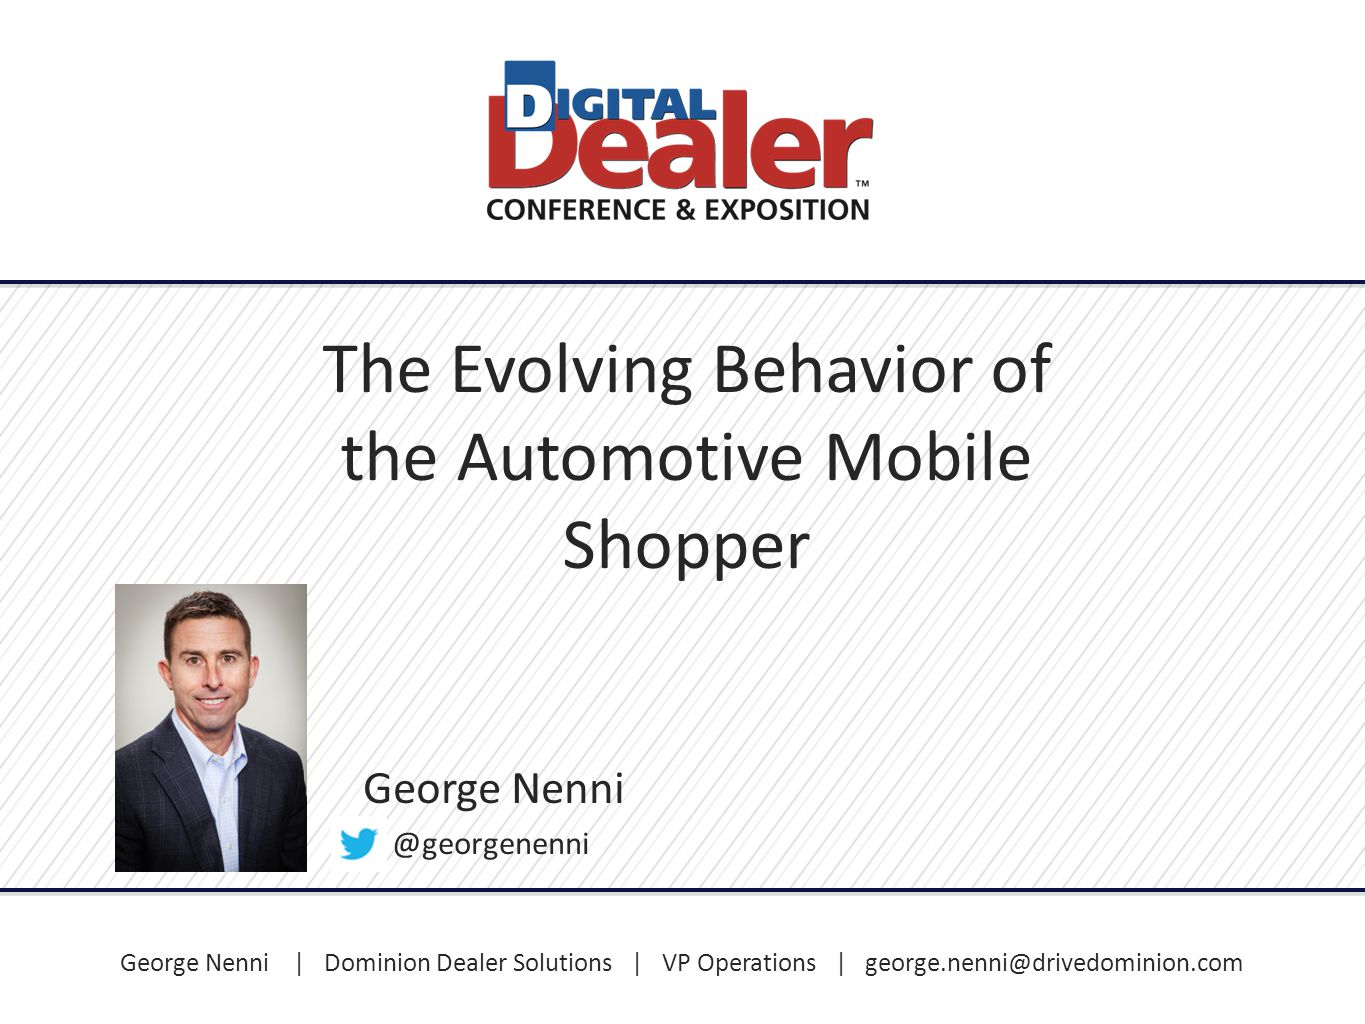 George Nenni | Dominion Dealer Solutions | VP Operations | The Evolving Behavior of the Automotive Mobile Shopper George